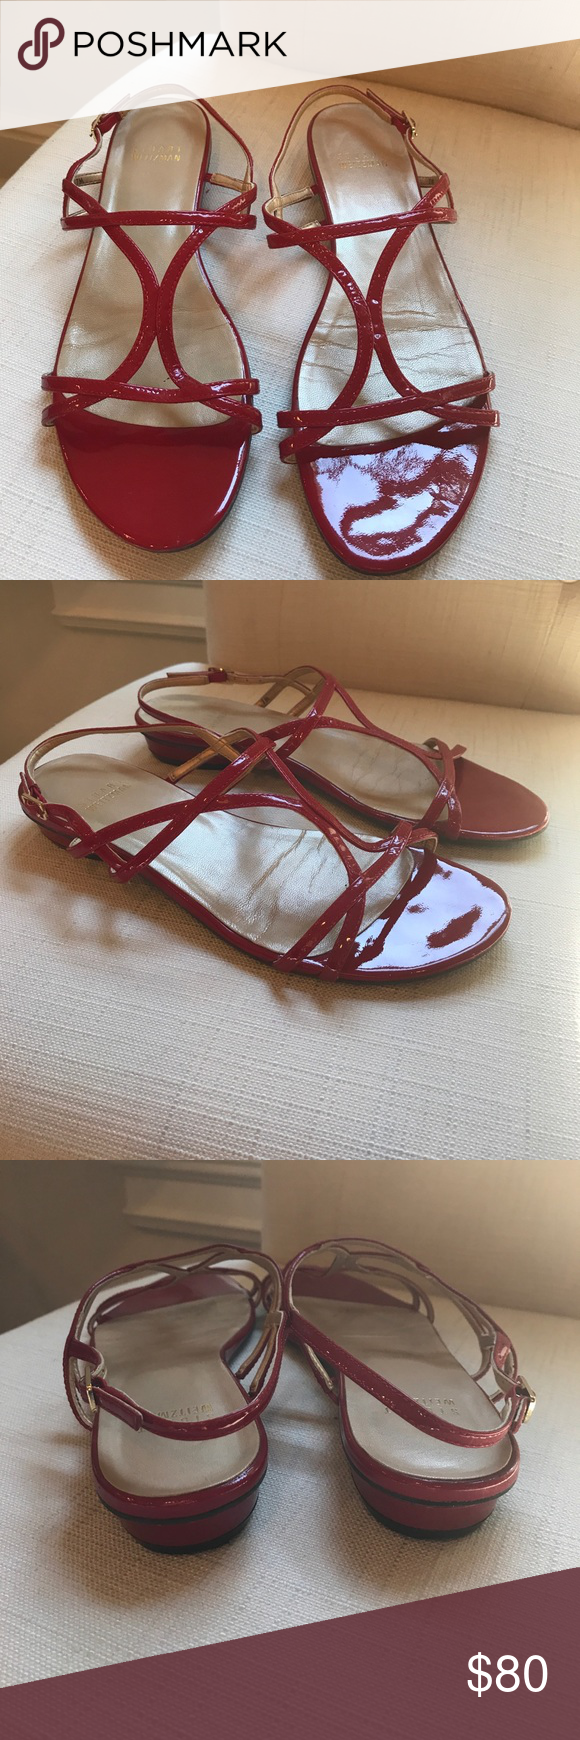 Stuart Weitzman Red Sandals Stuart Weitzman strappy red patent sandals. Very good condition! Stuart Weitzman Shoes Sandals